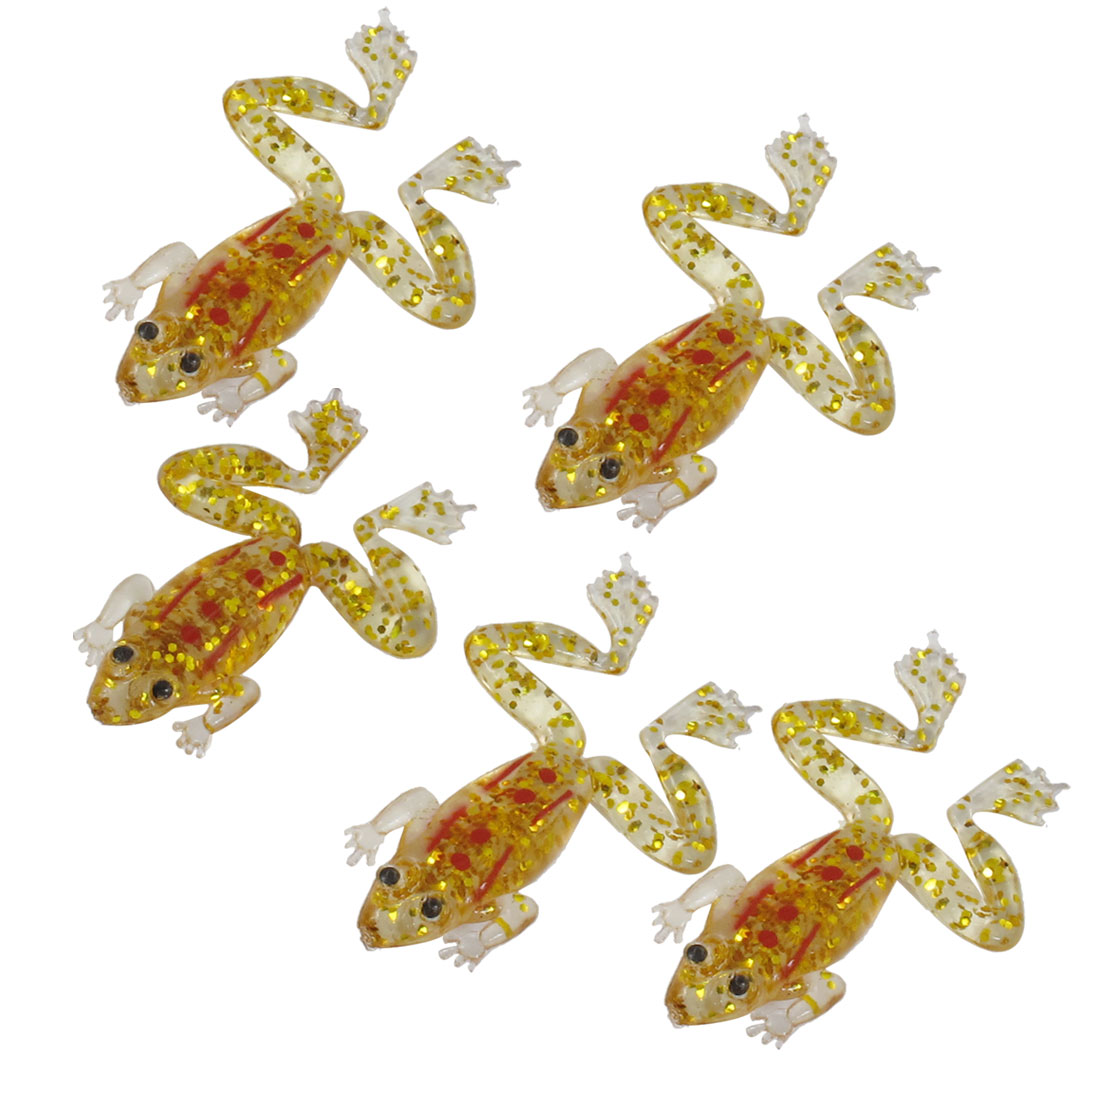 5 Pcs Gold Tone Glitter Sequins Accent Frog Shaped Fishing Baits